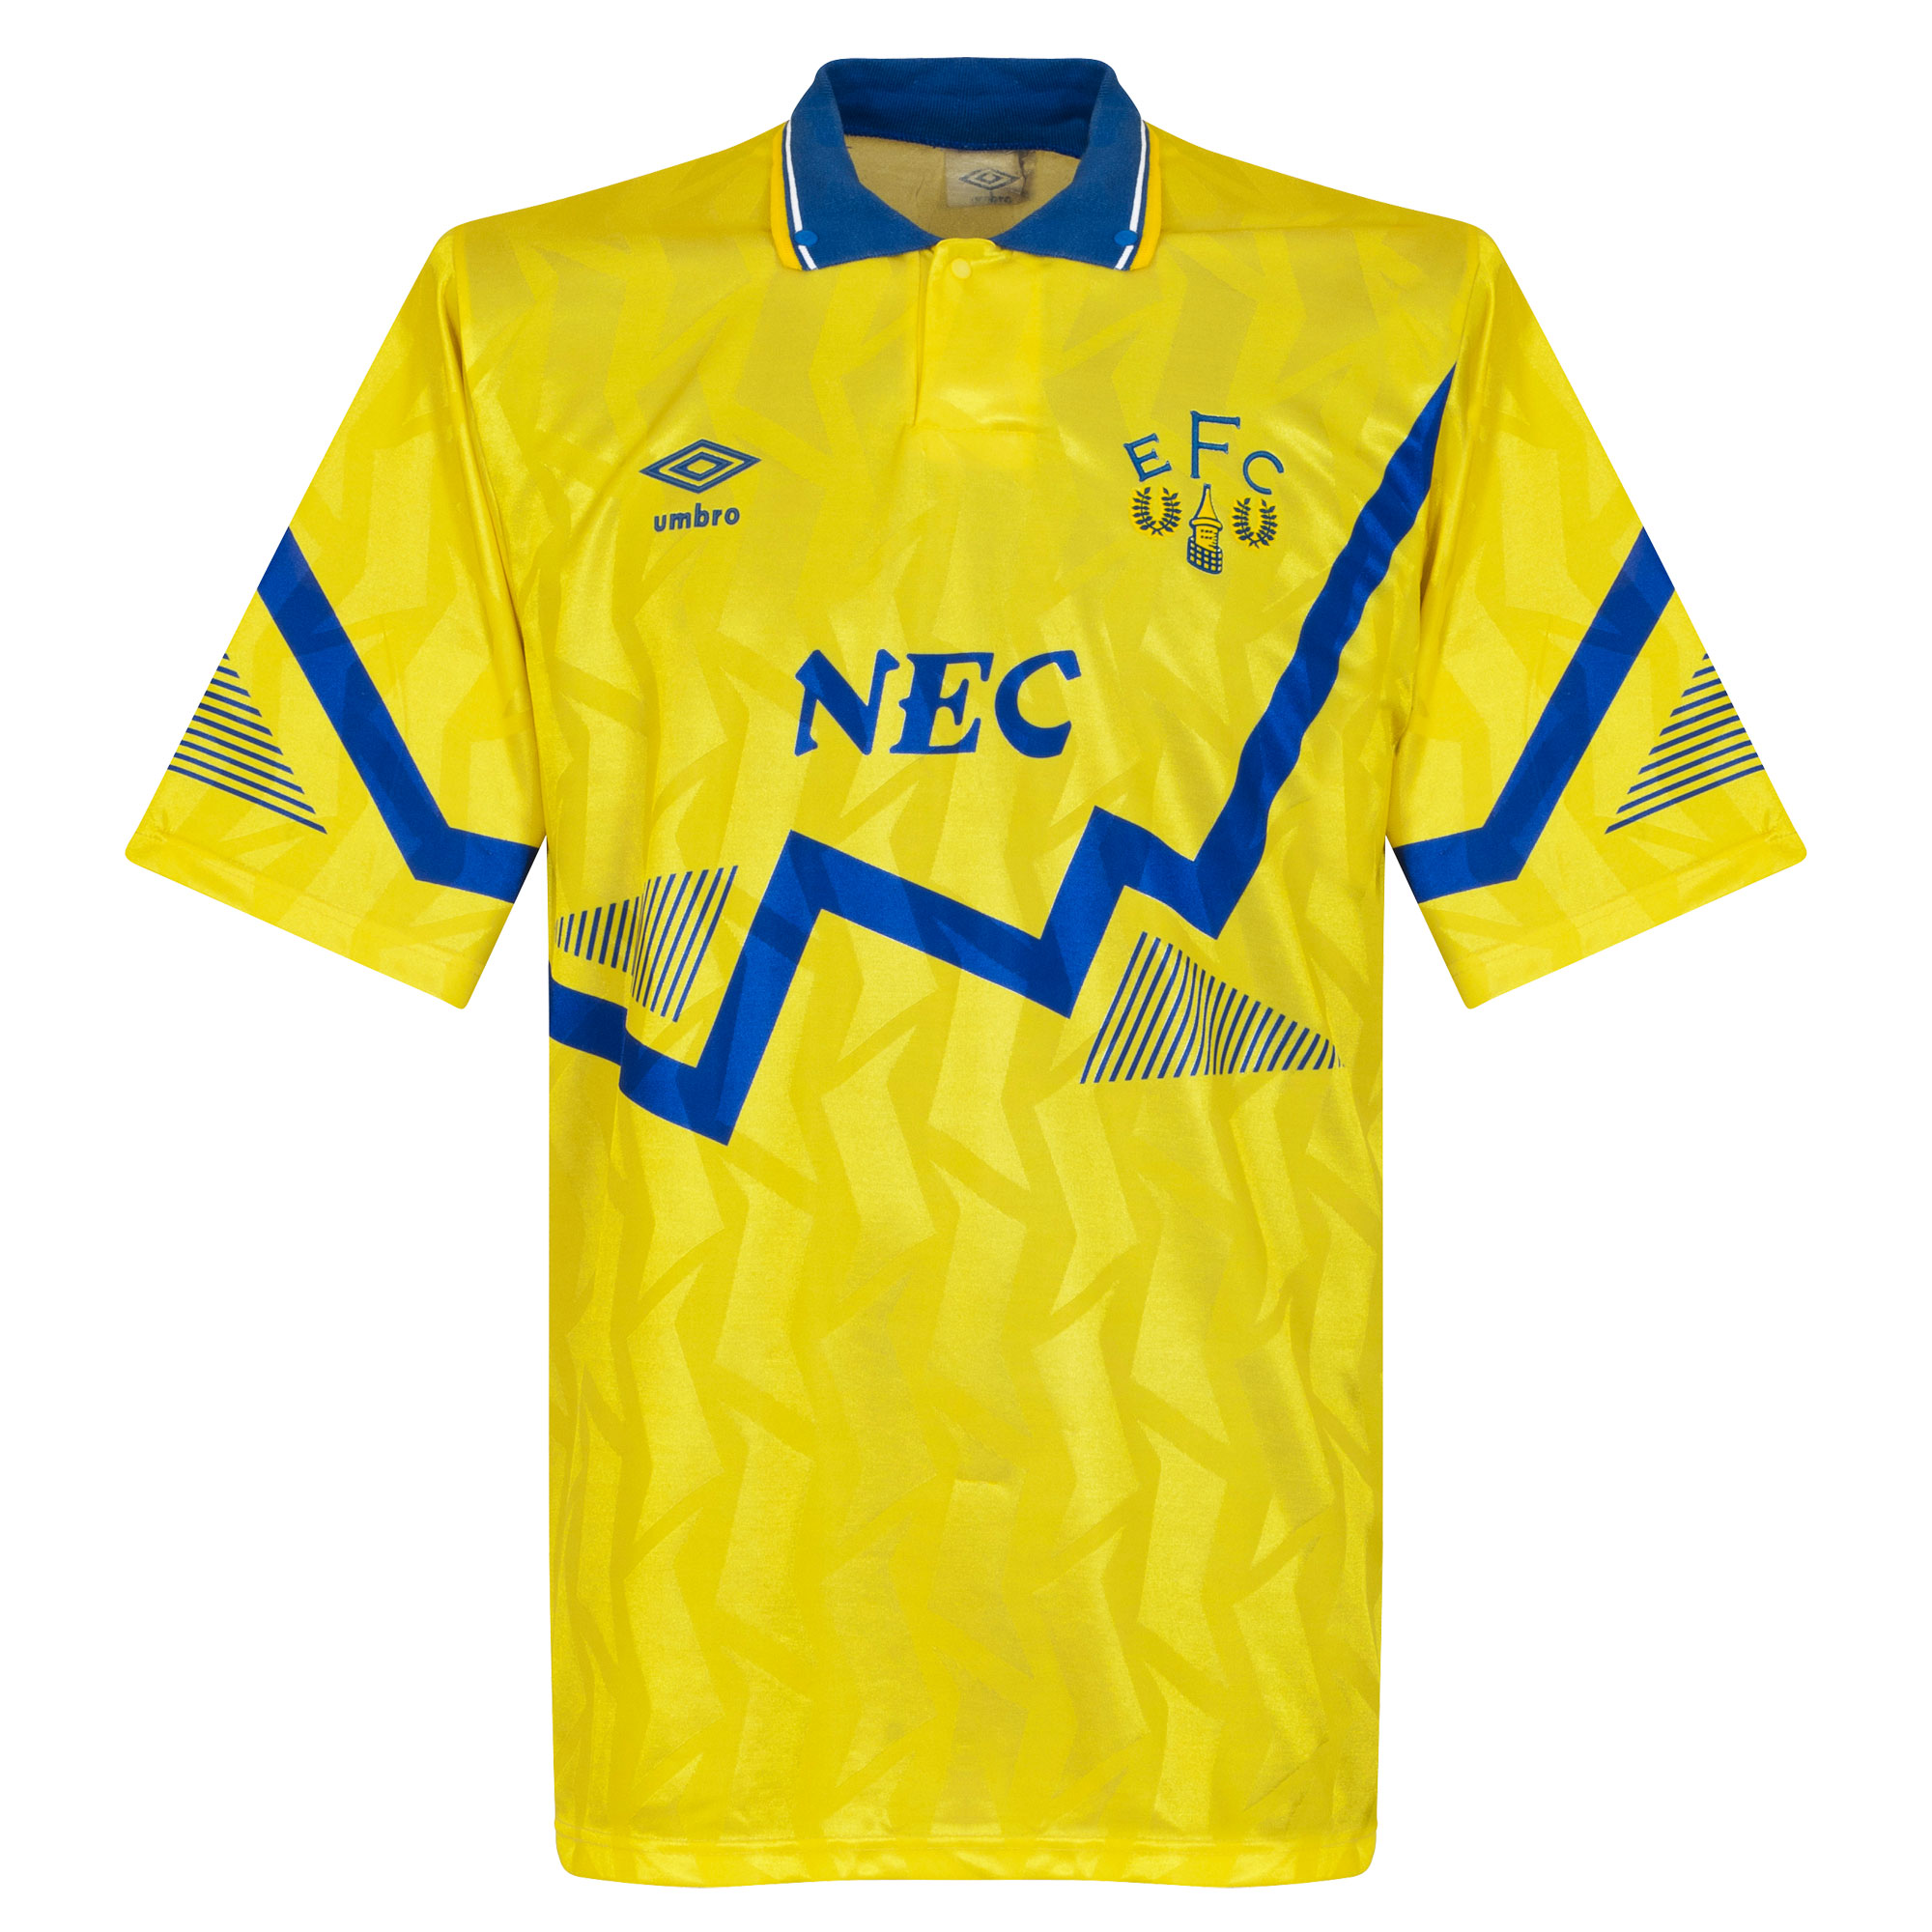 Umbro Everton 1990-1992 Away Shirt - USED Condition (Poor) - Size Large